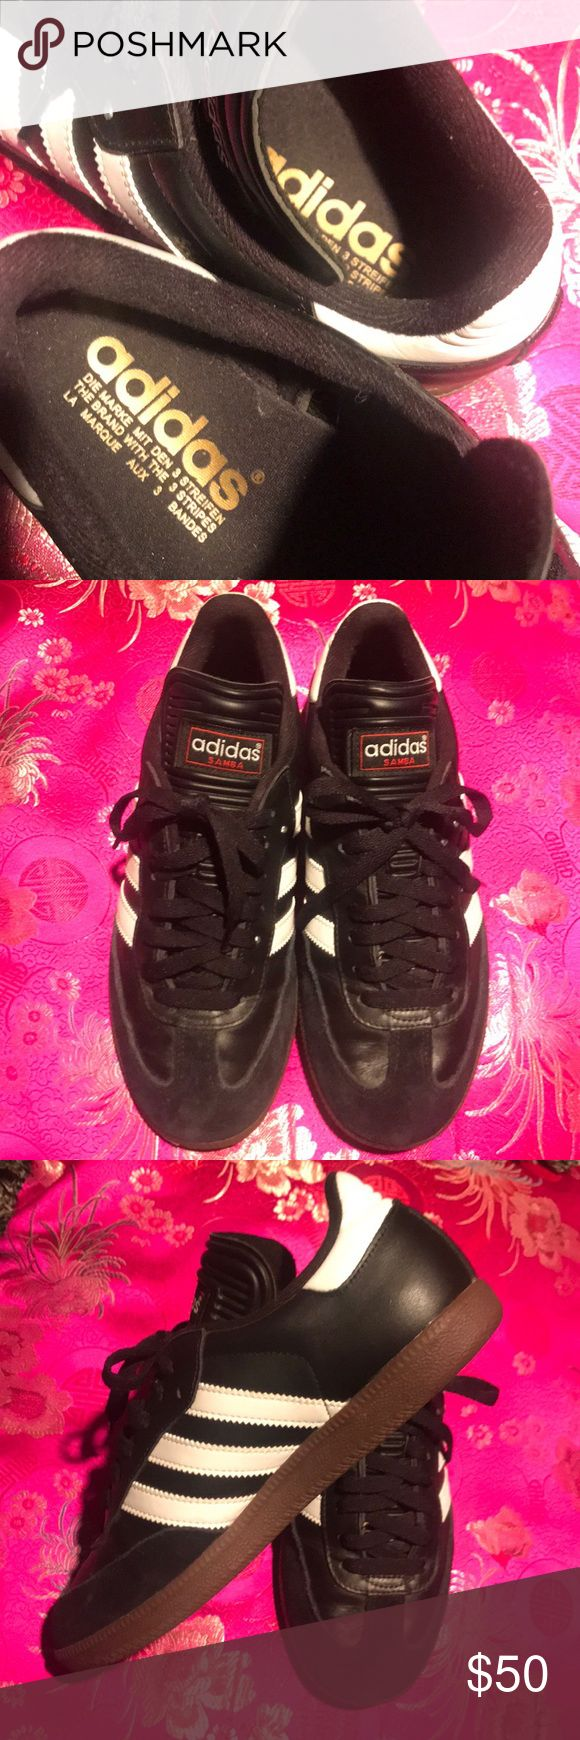 Men's Adidas Samba Sz 6.5 (Ladies 8) Store display shoe-like new! Inside, outer sole, leather-suede in mint condition! adidas Shoes Athletic Shoes